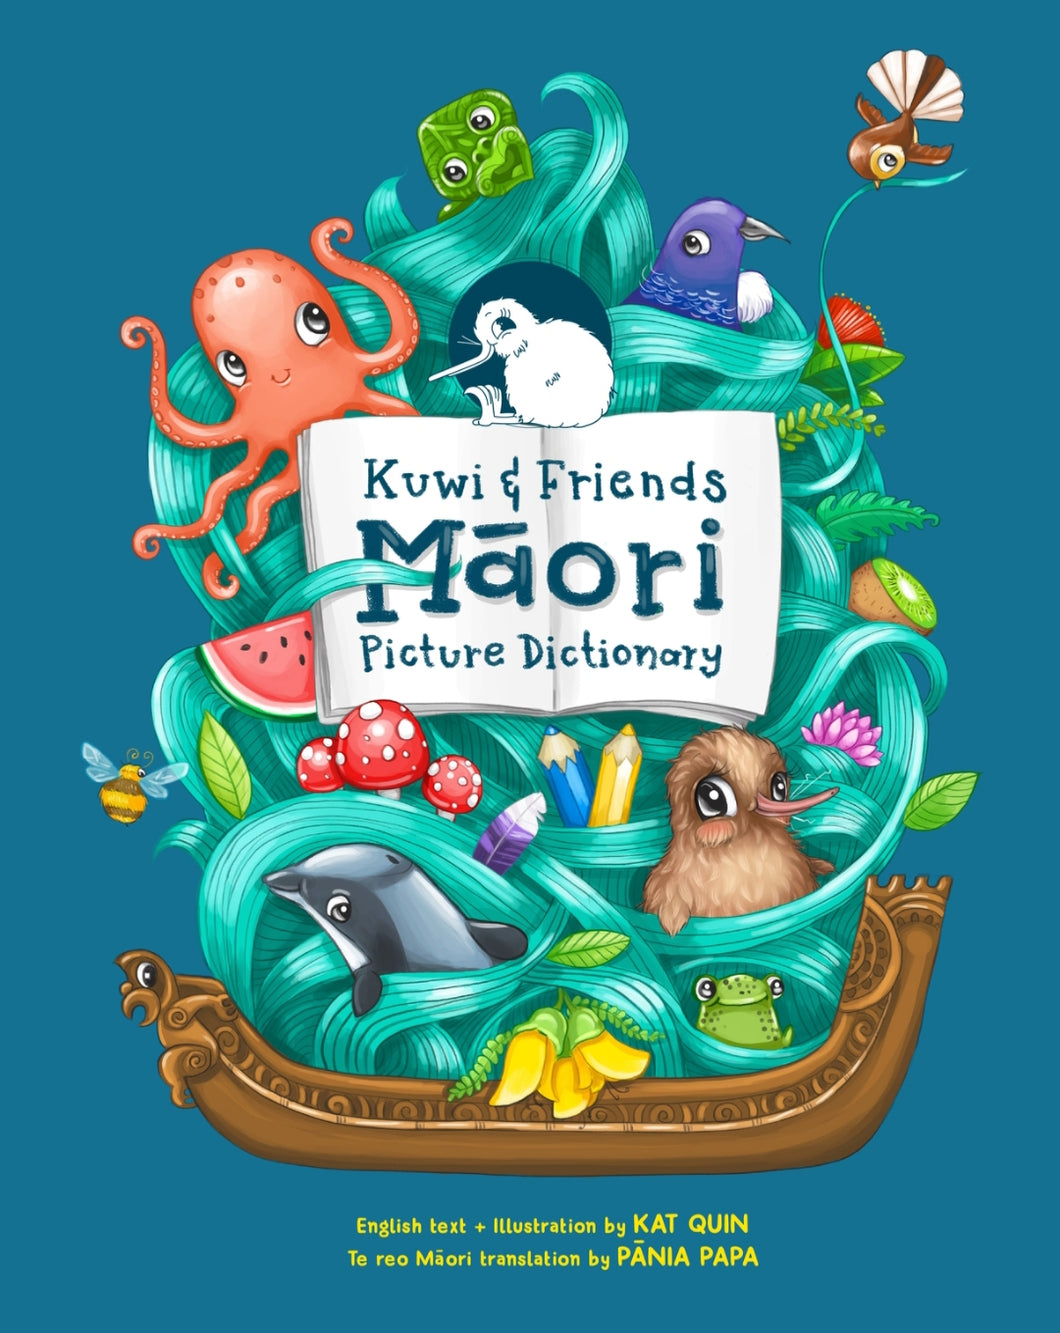 The Kuwi and Friends Māori Picture Dictionary